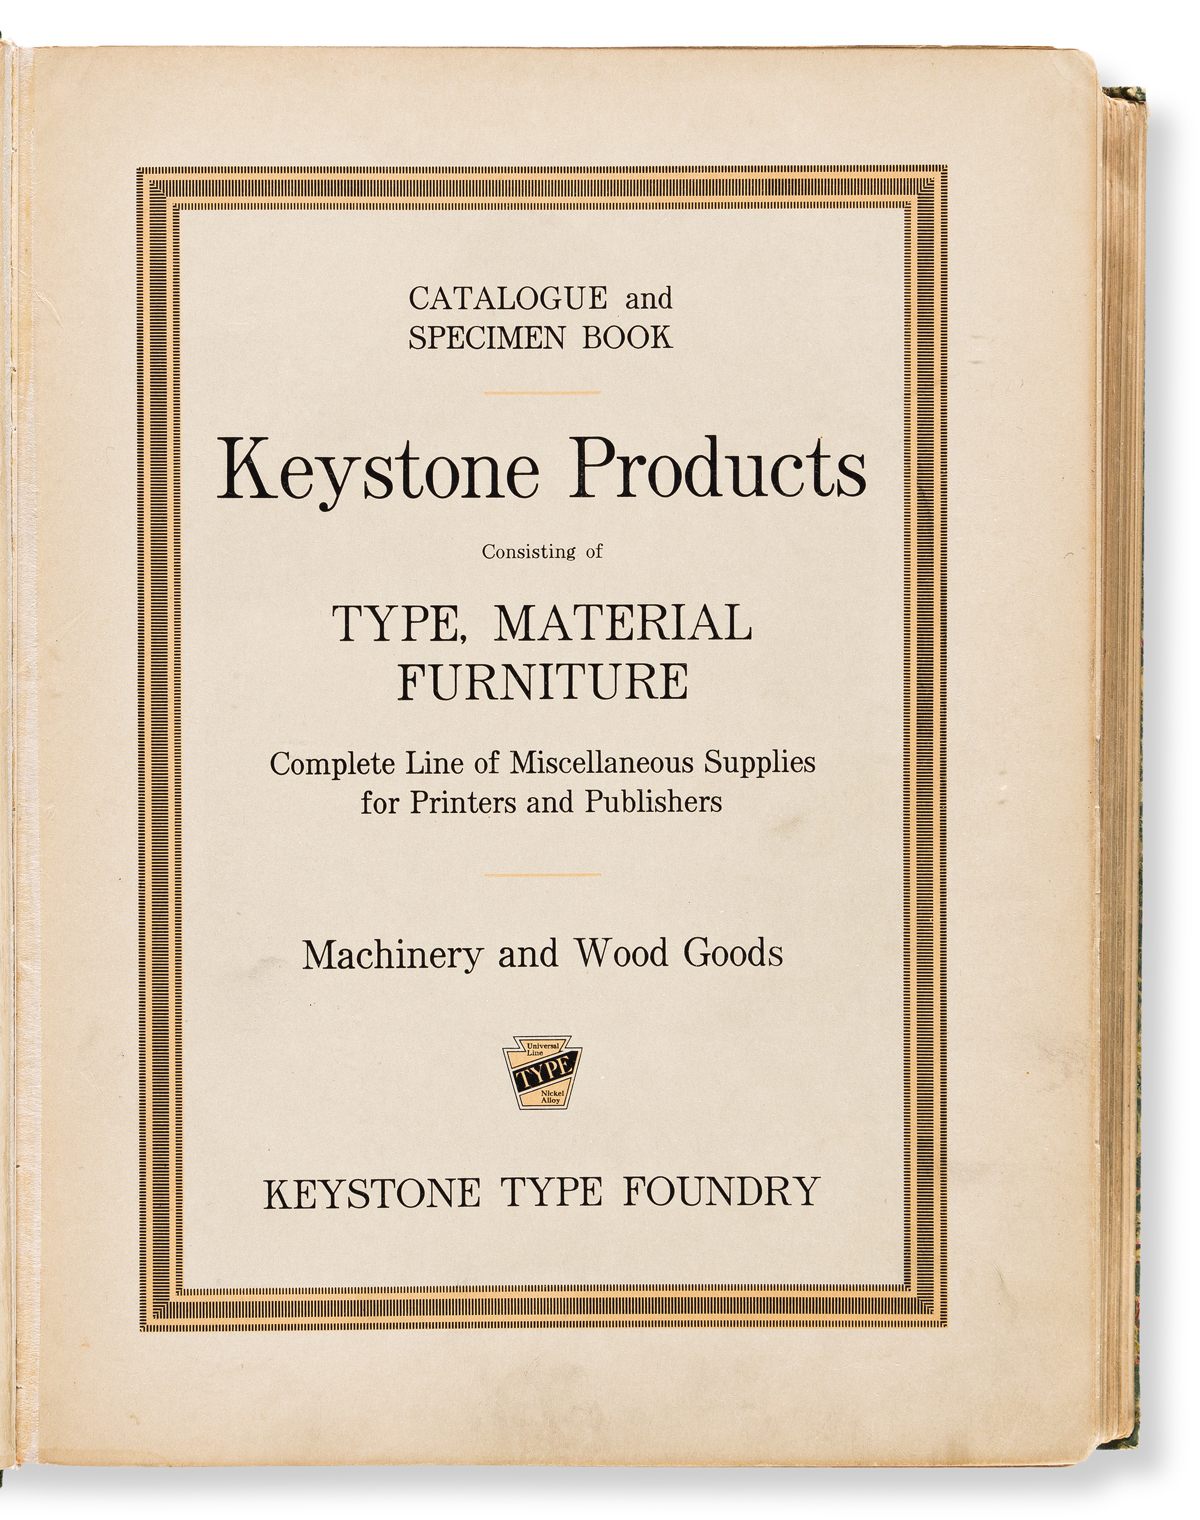 [SPECIMEN BOOK AND TRADE CATALOGUE — KEYSTONE PRODUCTS]. Catalogue and Specimen Book. Keystone Products, Consisting of Type, Material F